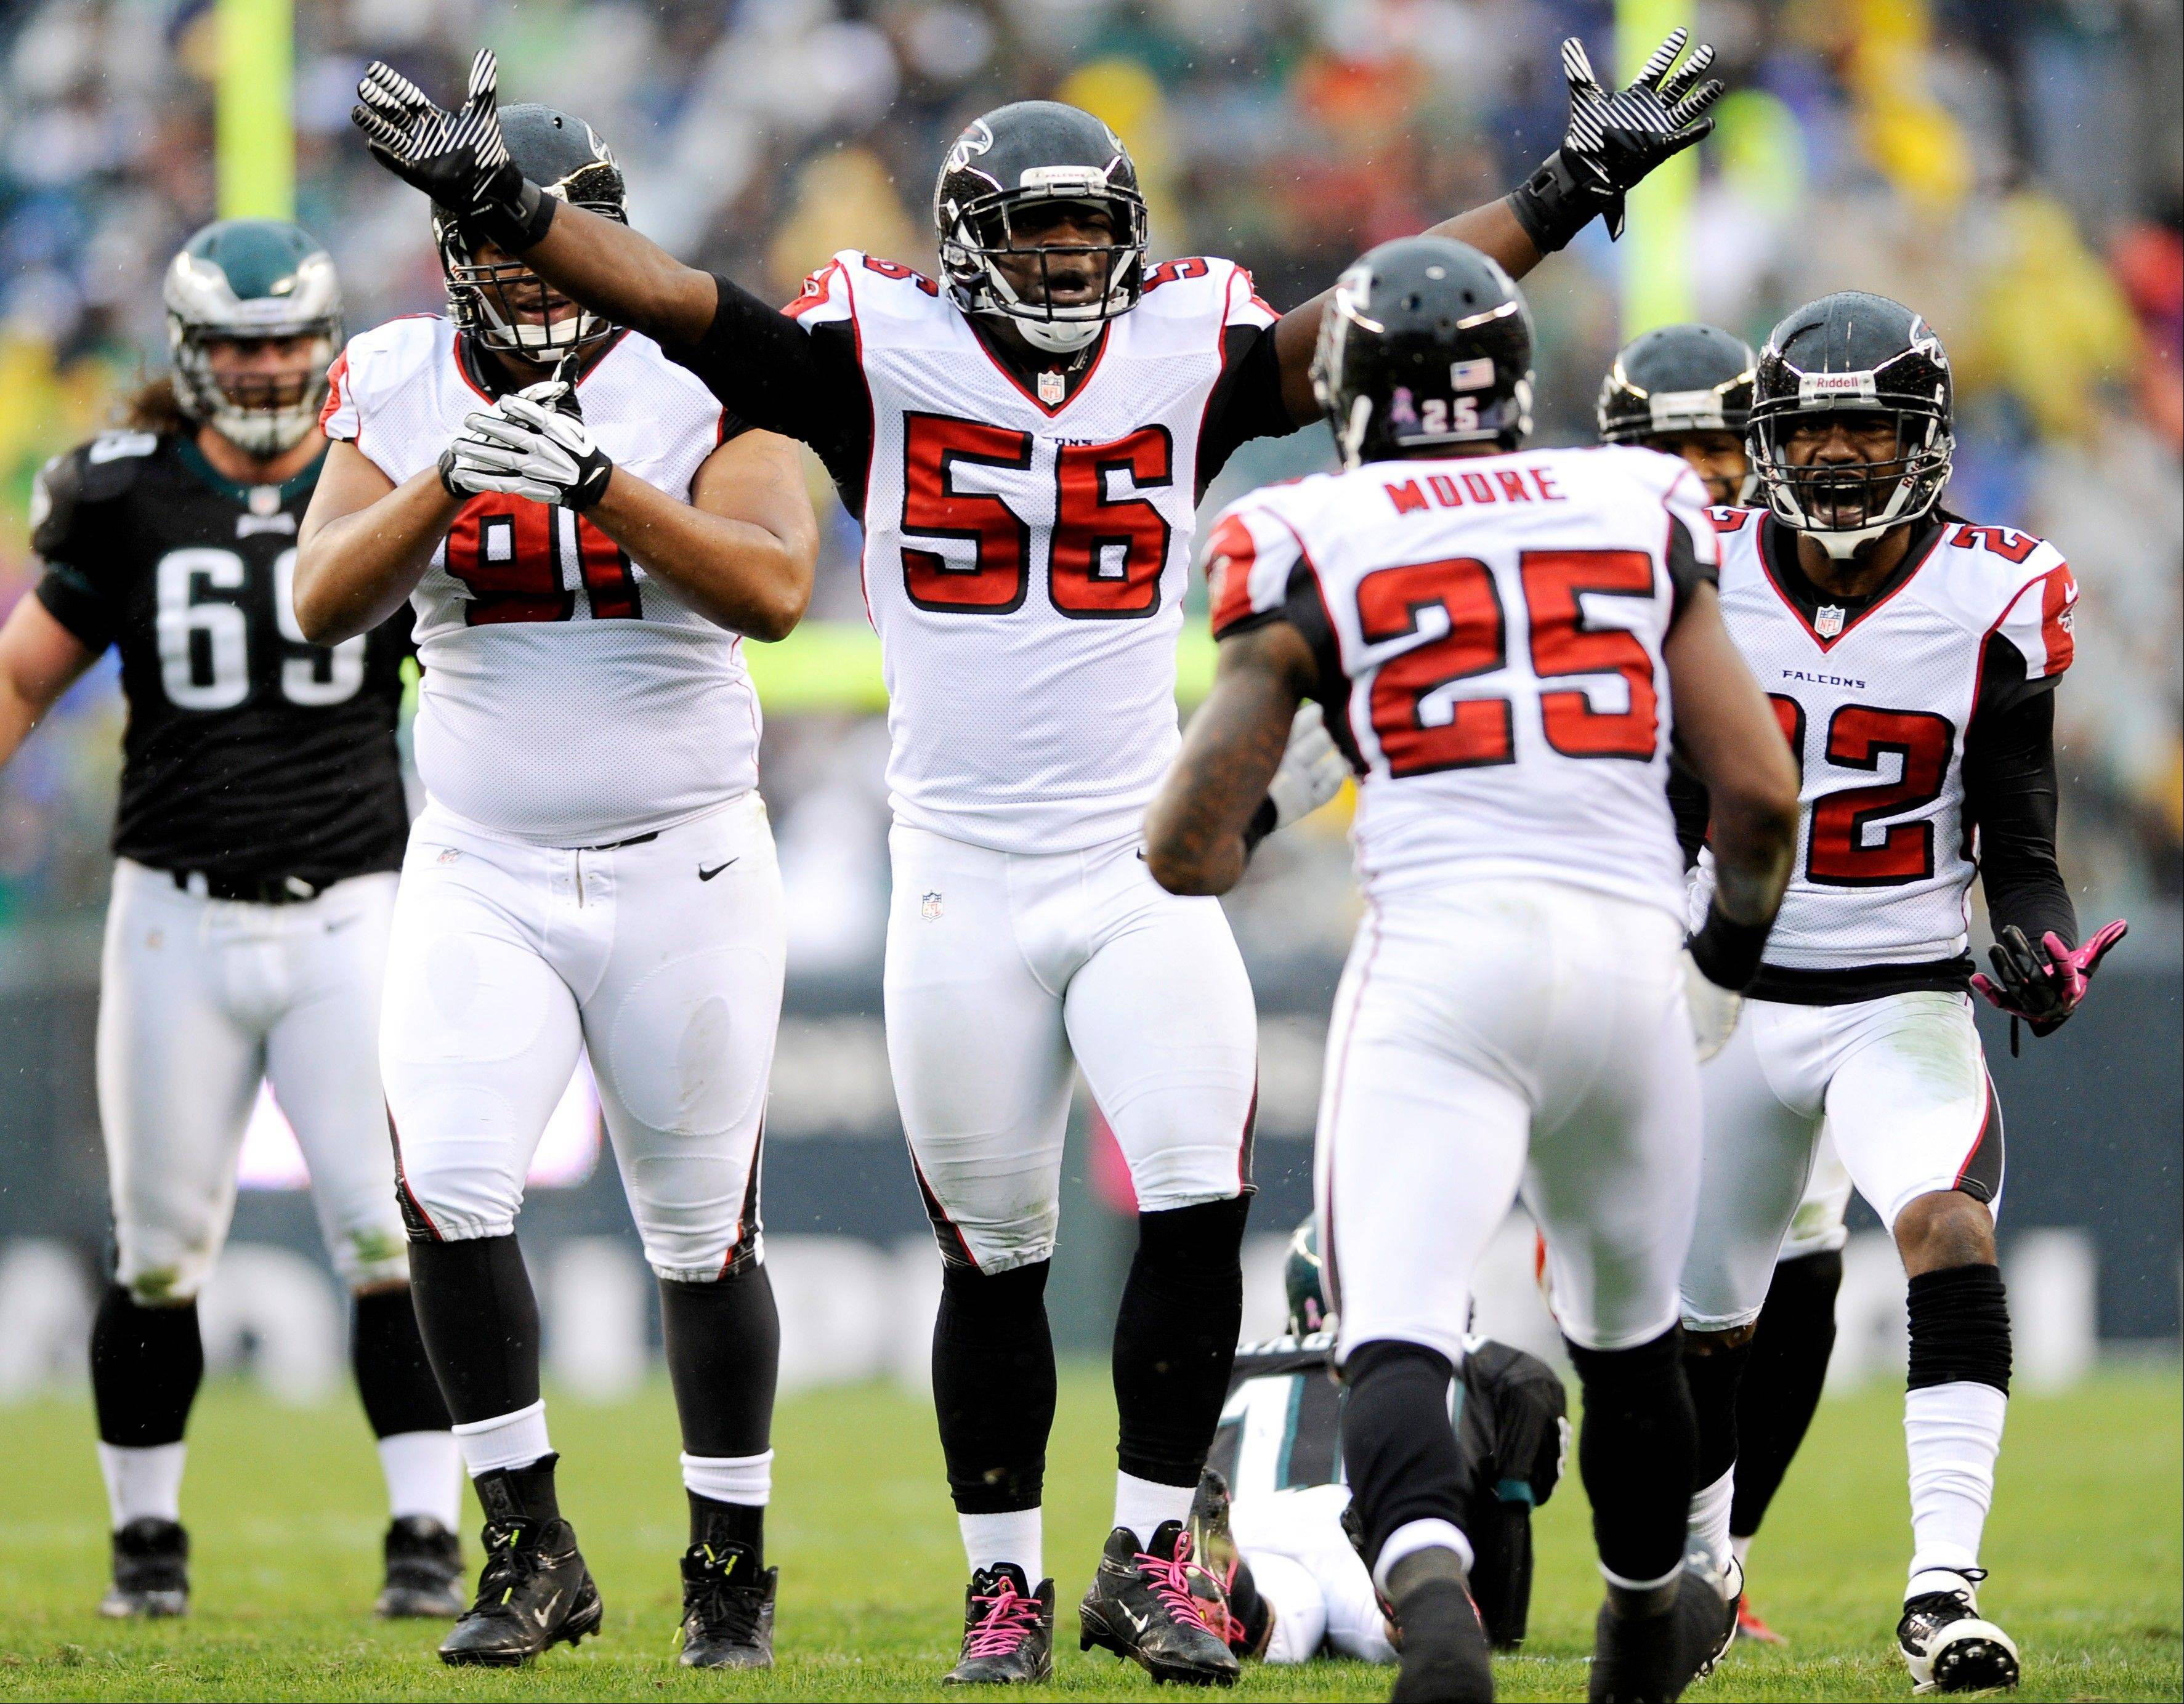 Atlanta Falcons outside linebacker Sean Weatherspoon (56) reacts during the second half of an NFL football game against the Philadelphia Eagles in Philadelphia.